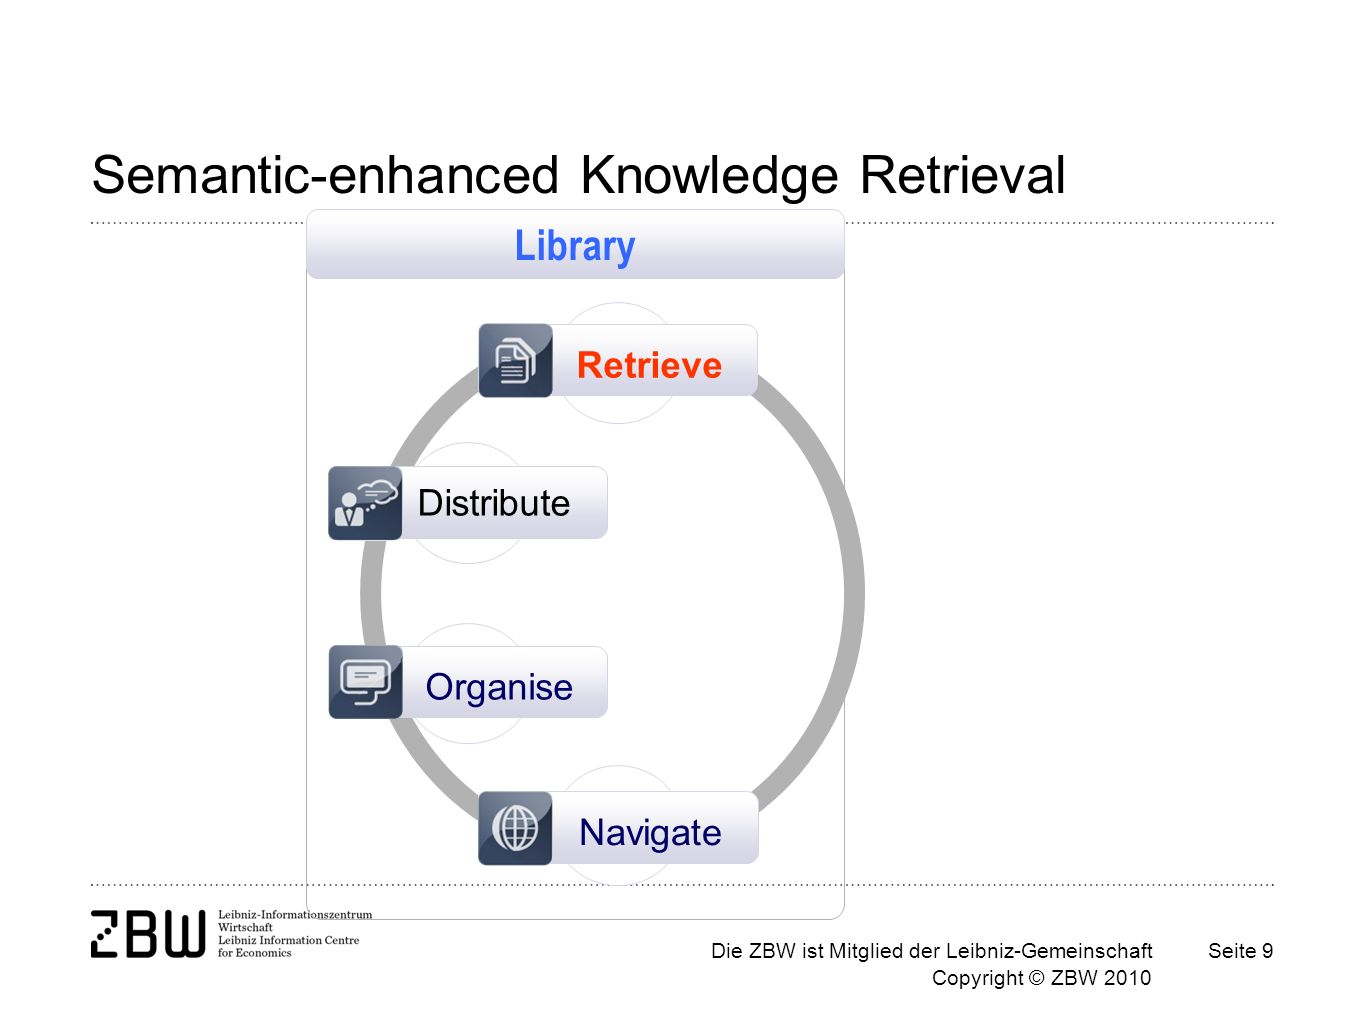 Die ZBW ist Mitglied der Leibniz-Gemeinschaft Copyright © ZBW 2010 Seite 9 Semantic-enhanced Knowledge Retrieval Distribute Organise Navigate Retrieve Library